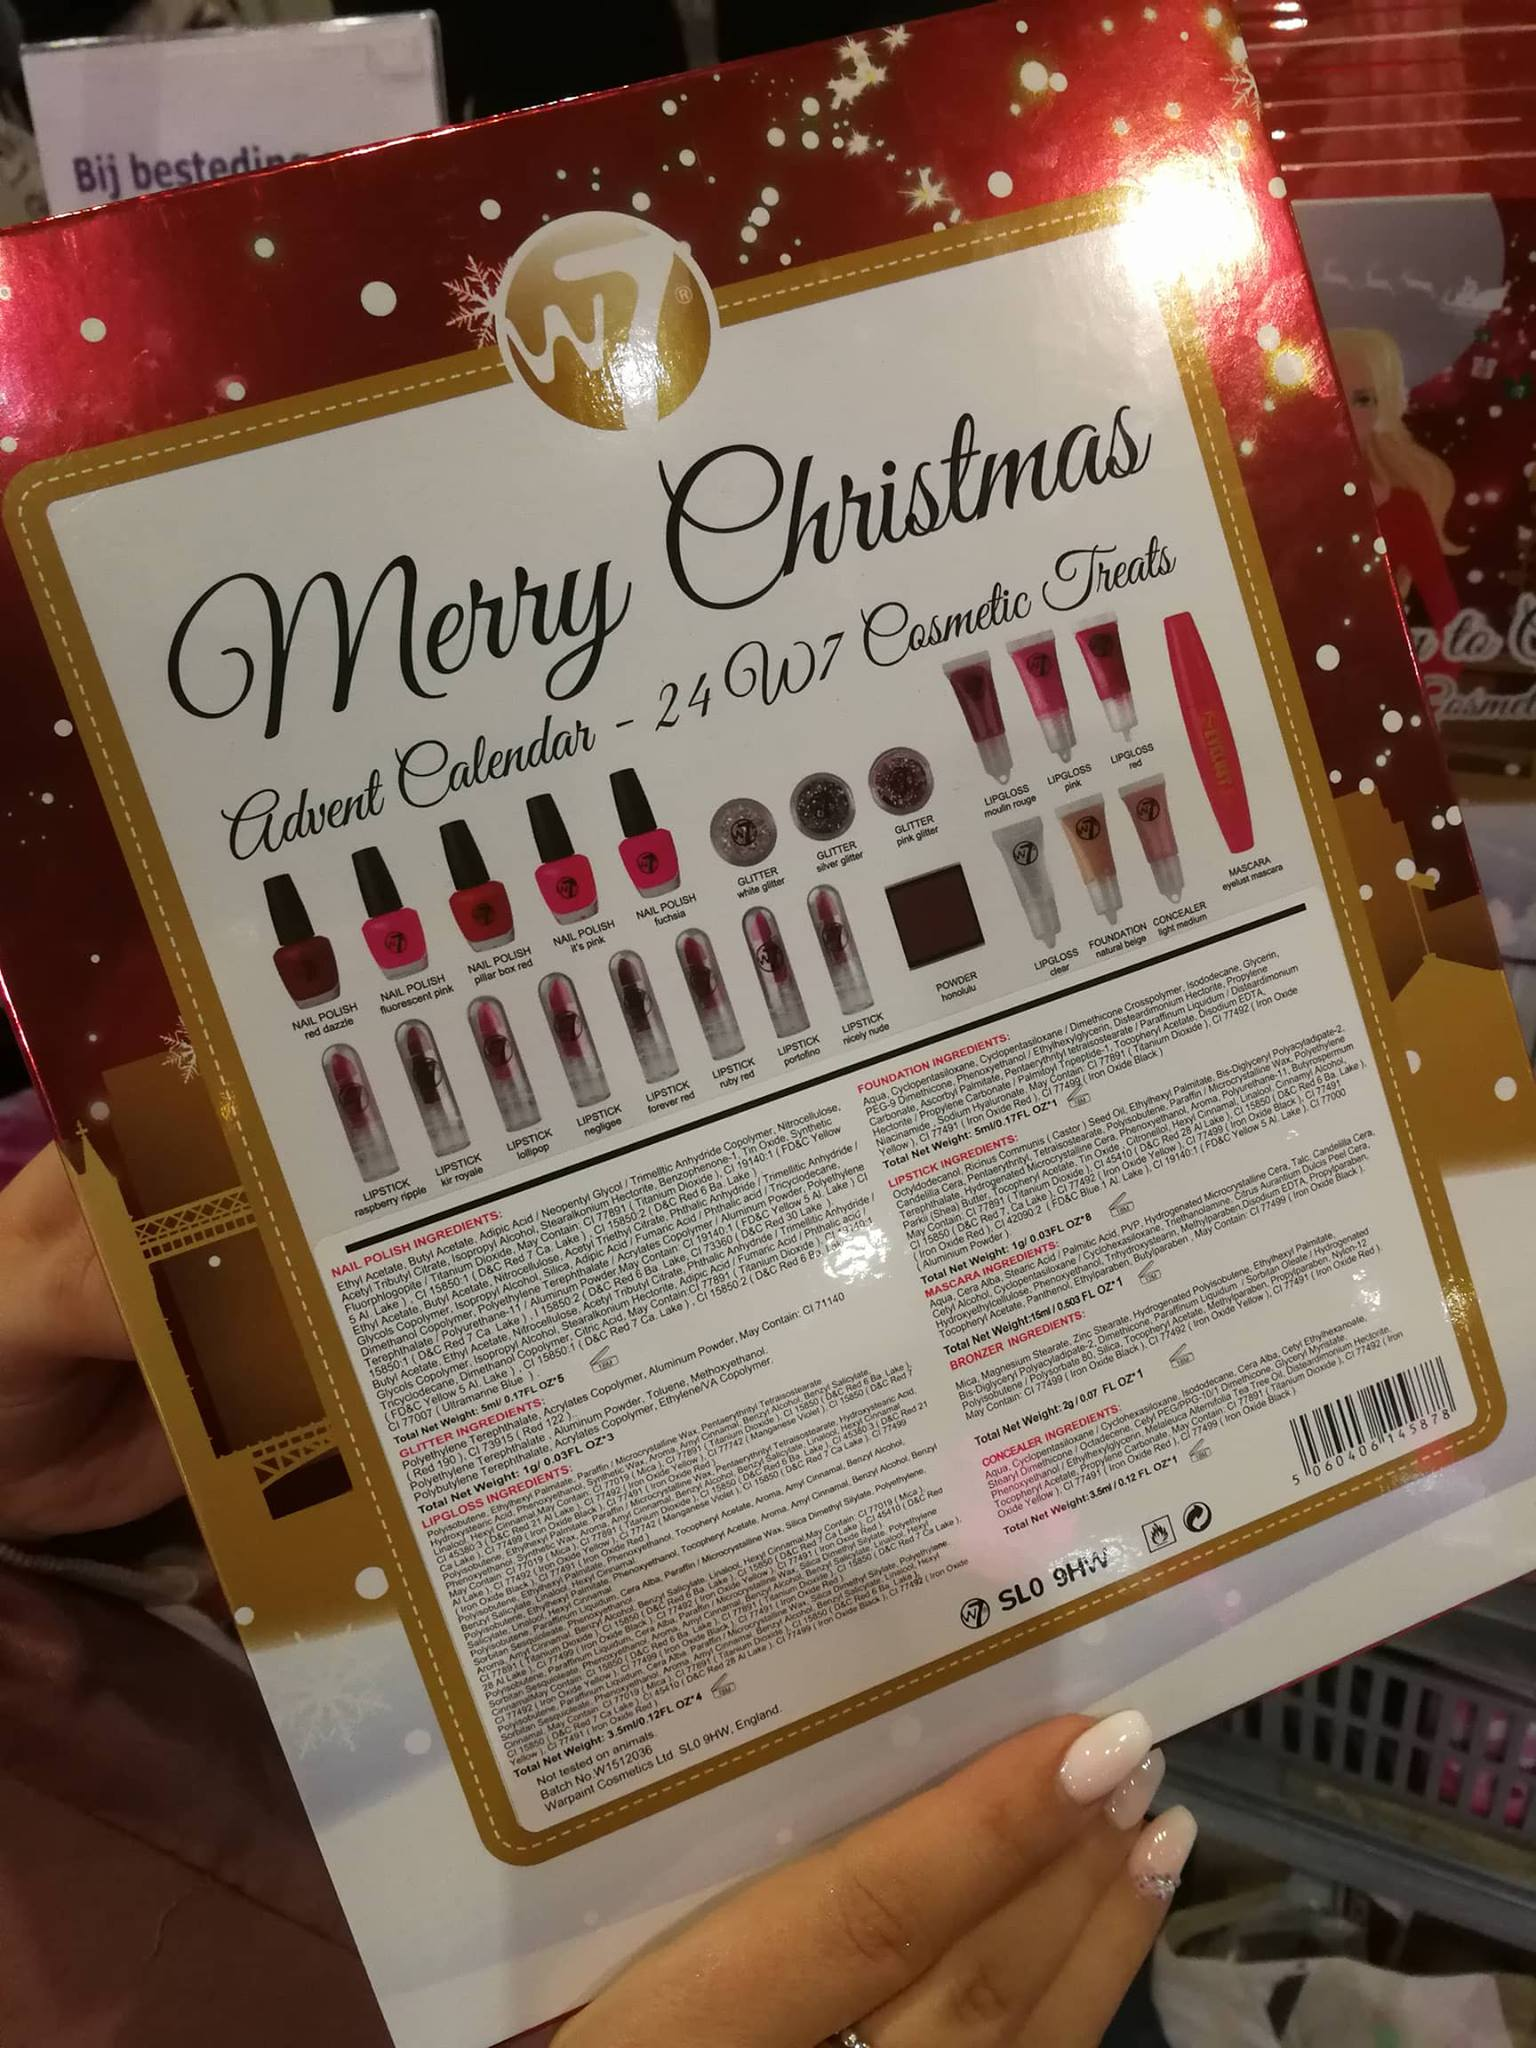 Dit is de goedkoopste beauty adventskalender van 2017!